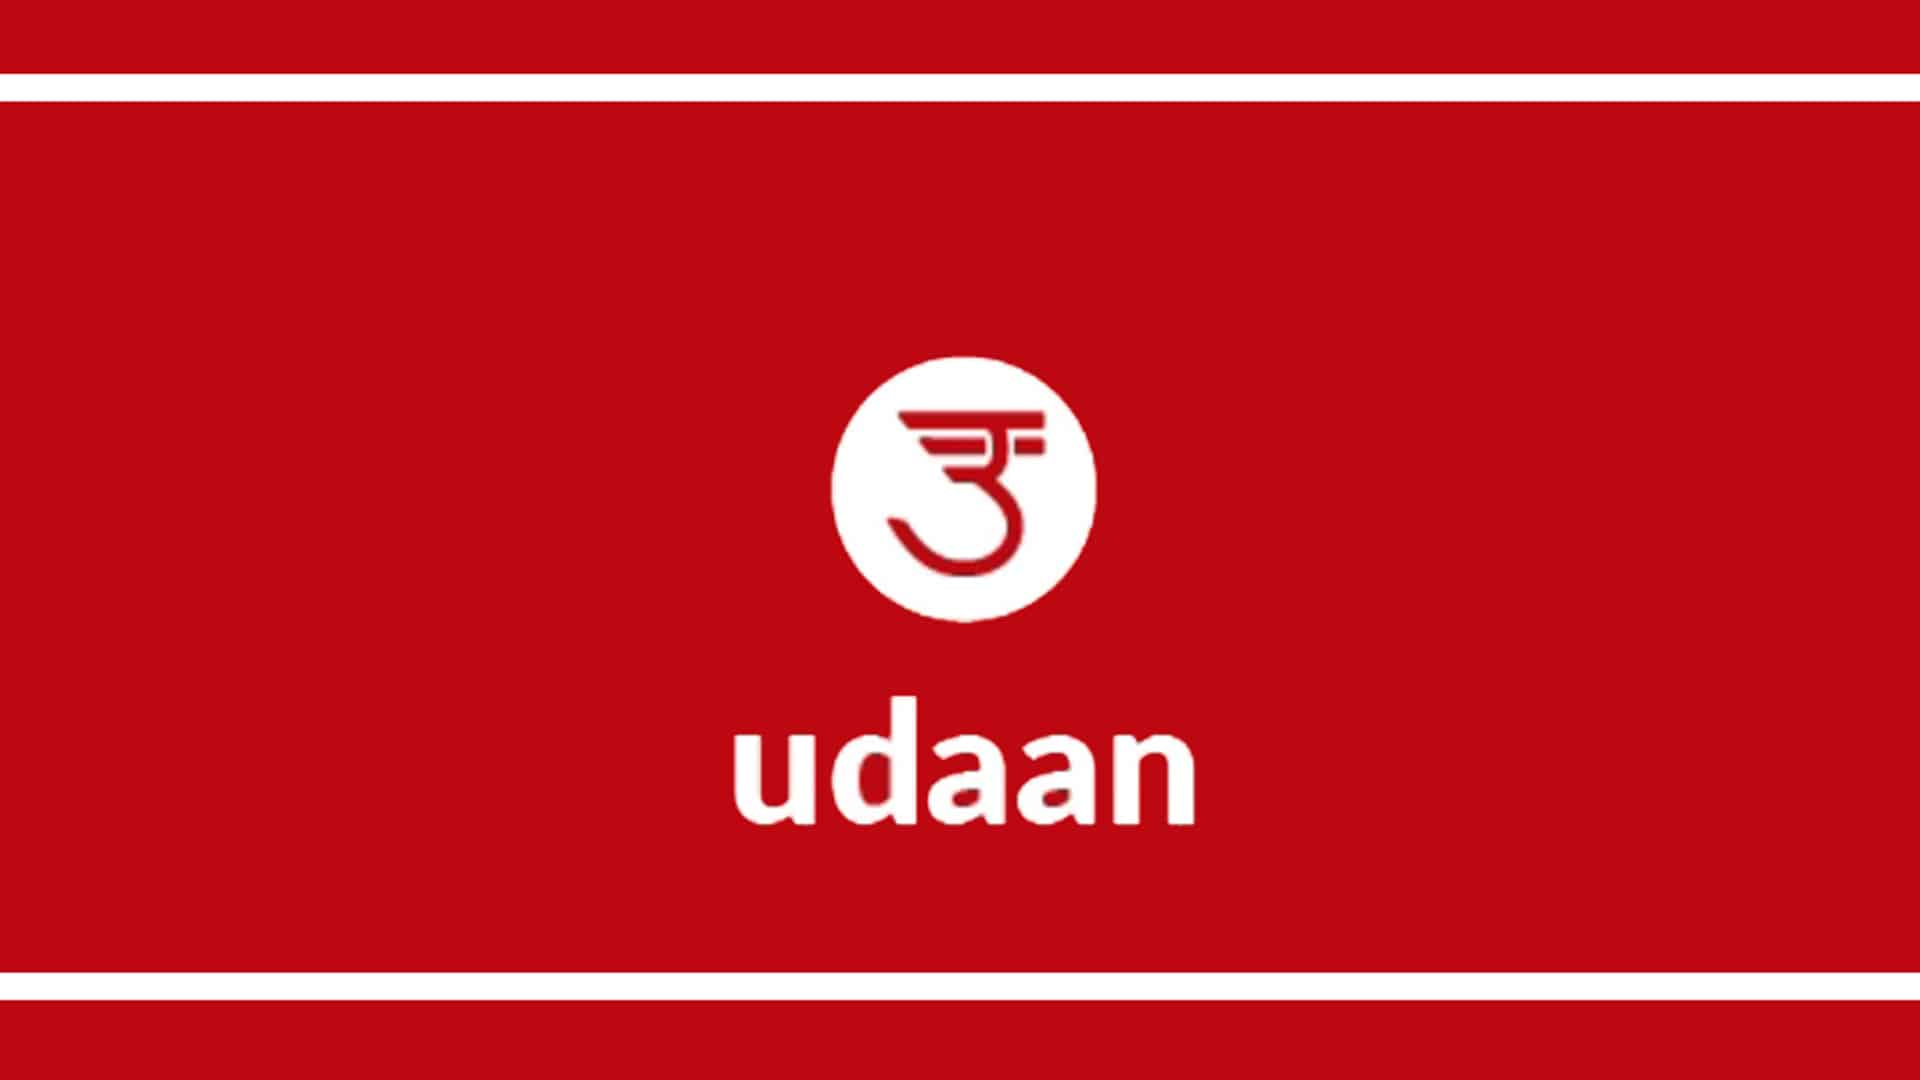 Udaan raises $280 mn in funding from Lightspeed Venture Partners, Tencent, others